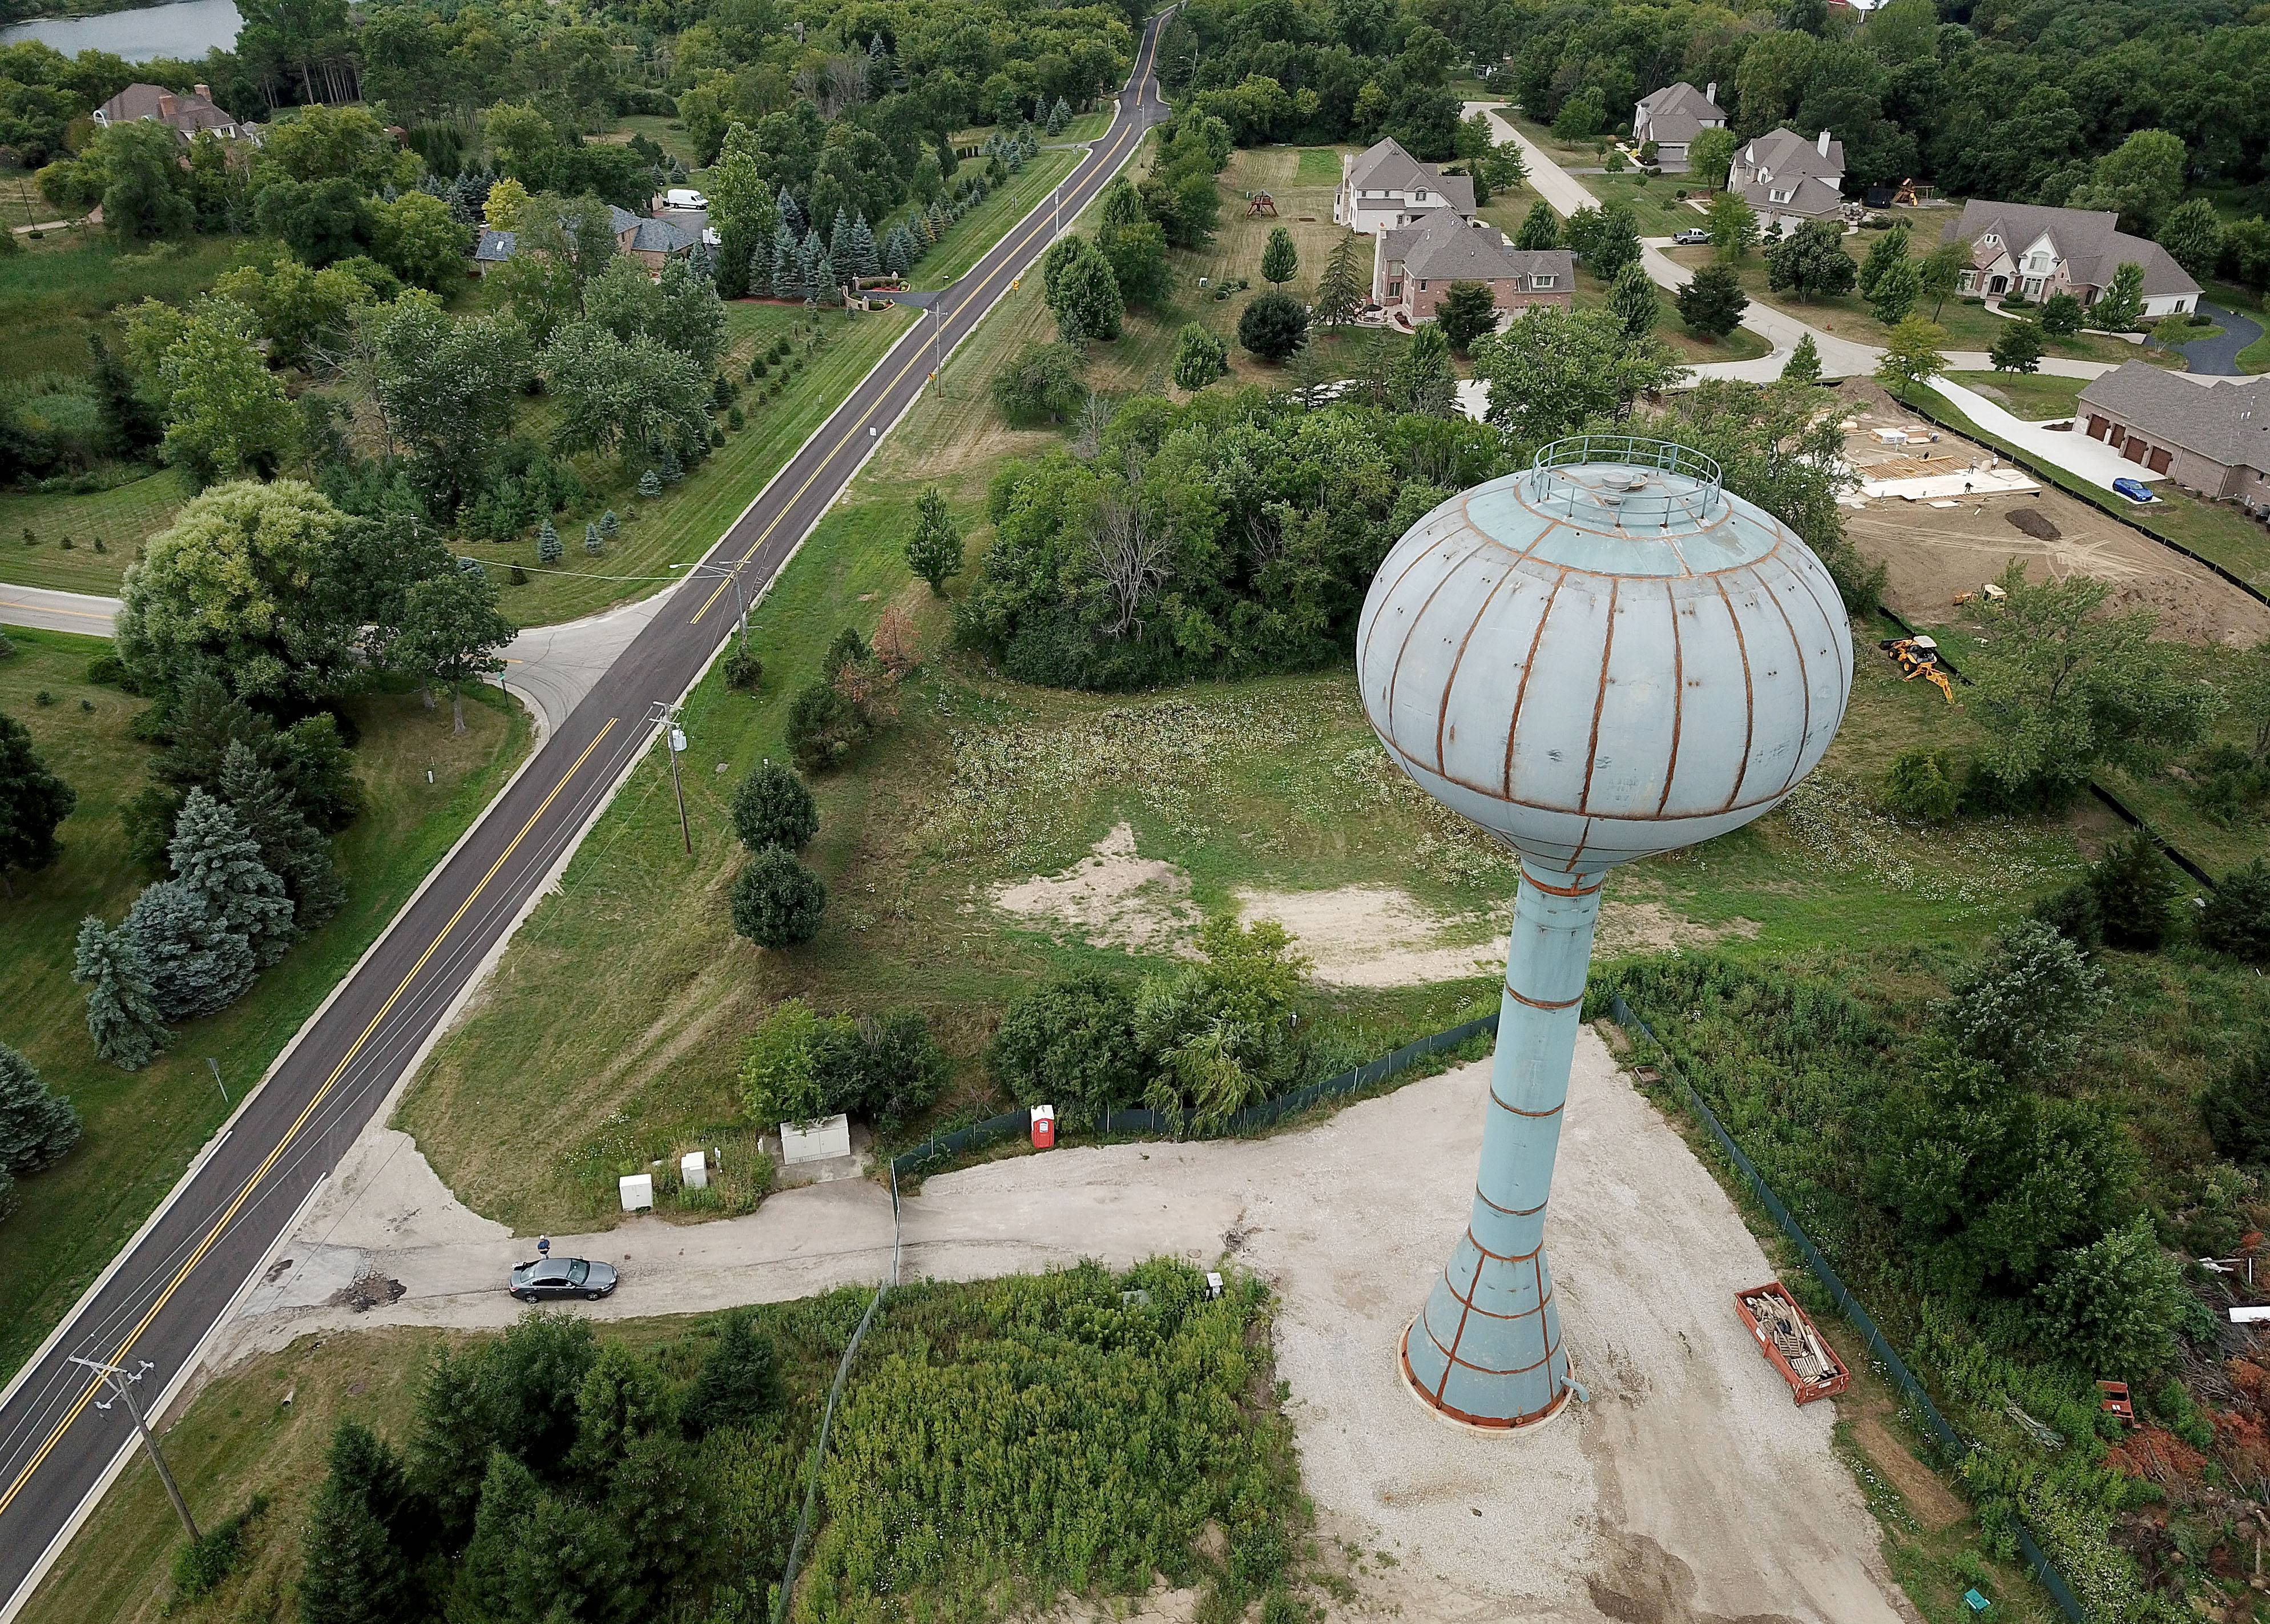 Aqua Illinois is completing a $2.5 million elevated water storage tank to improve service for customers in Hawthorn Woods.